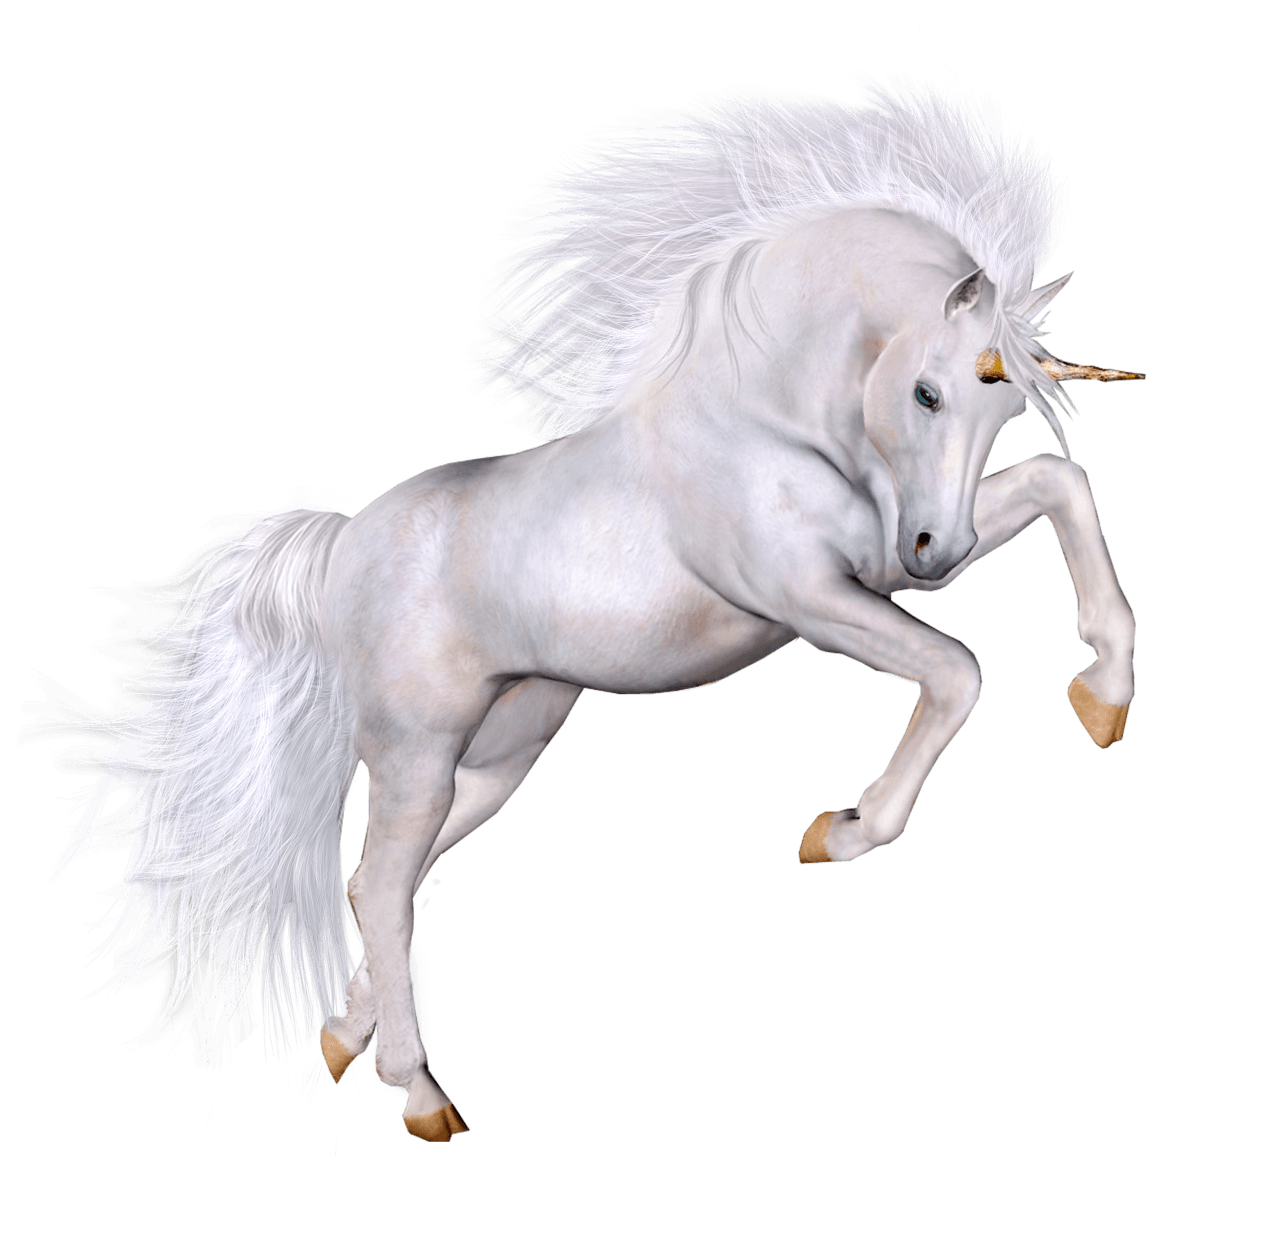 Unicorn PNG Free Download